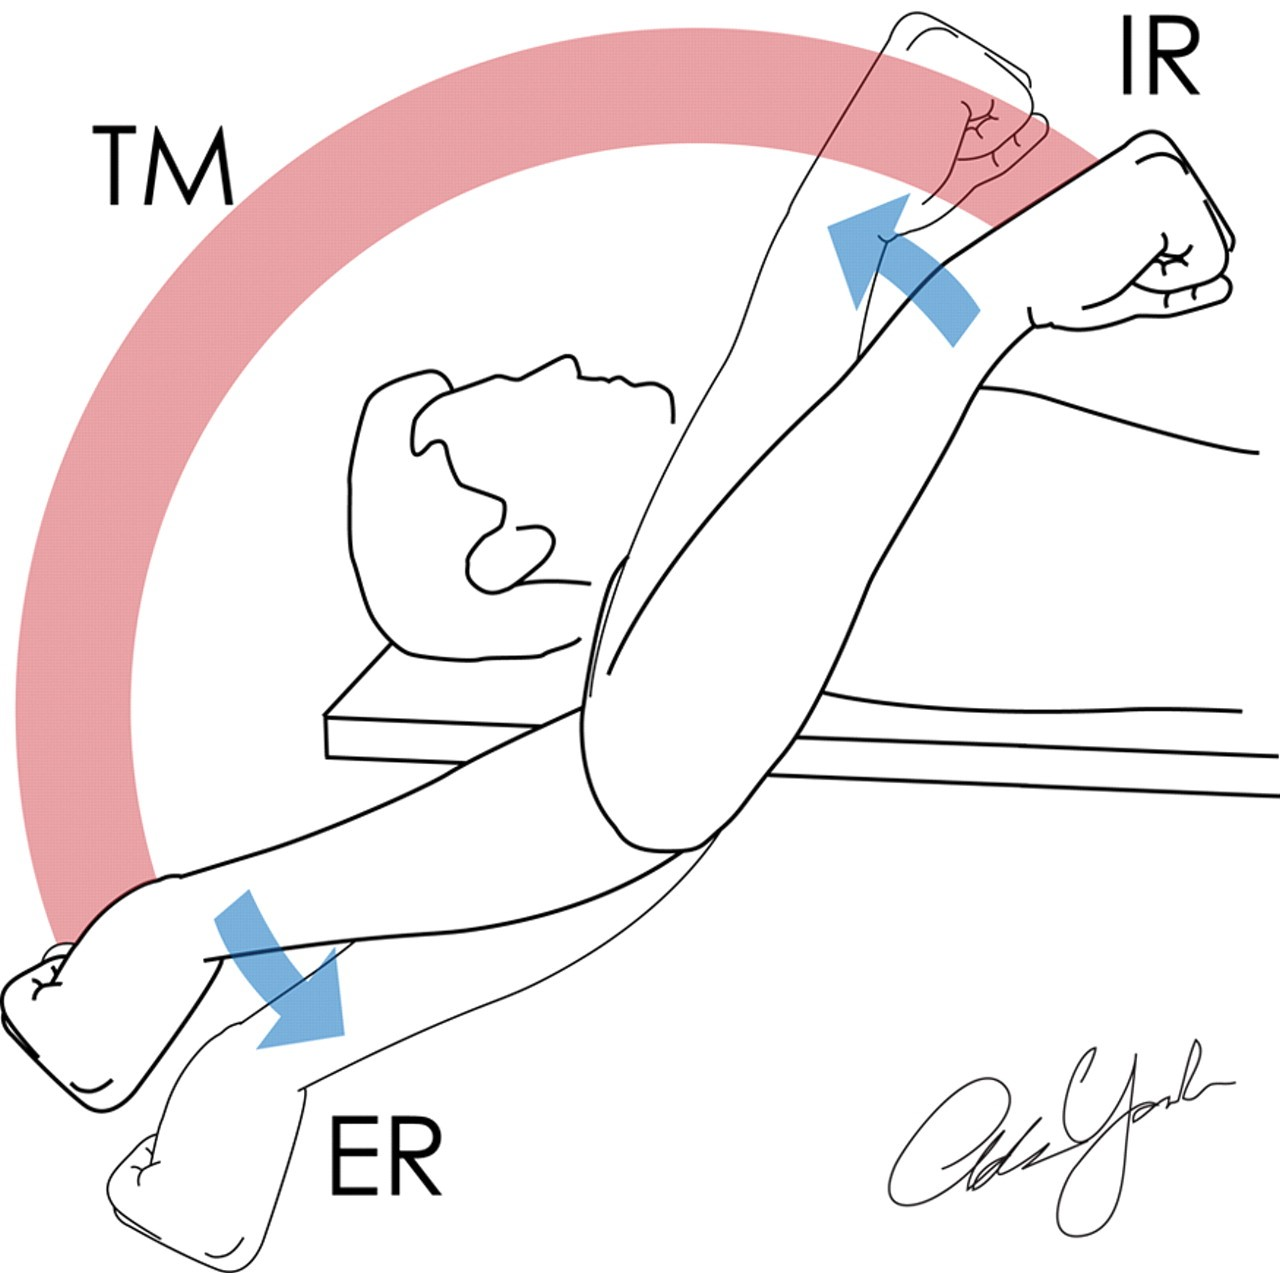 In athletic training we call internal and external rotation the total